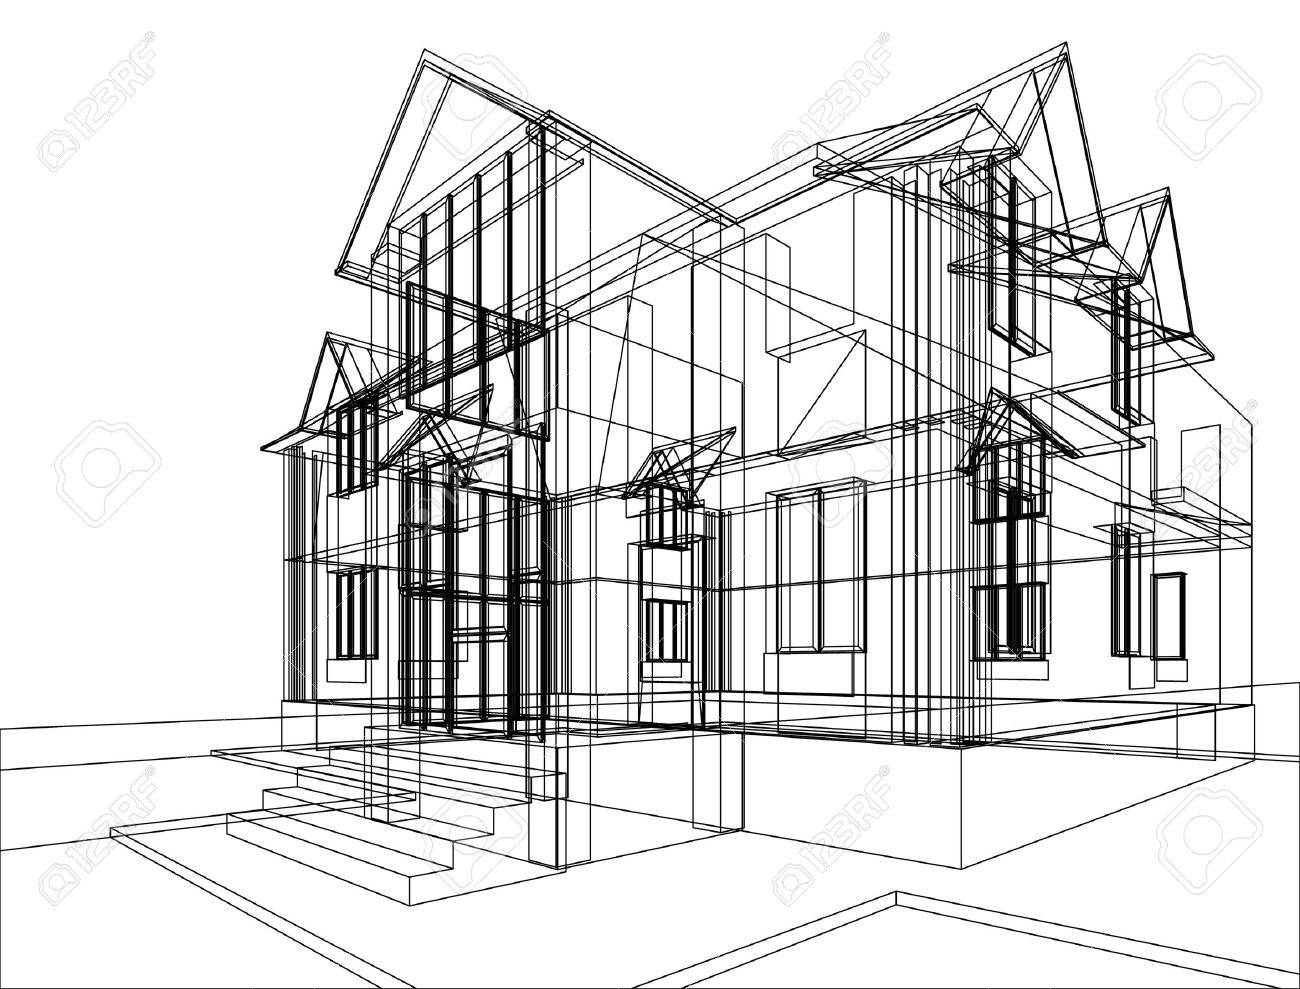 Abstract Sketch Of House. Illustration Of 3d Construction Stock ... 5c56e4dead8b